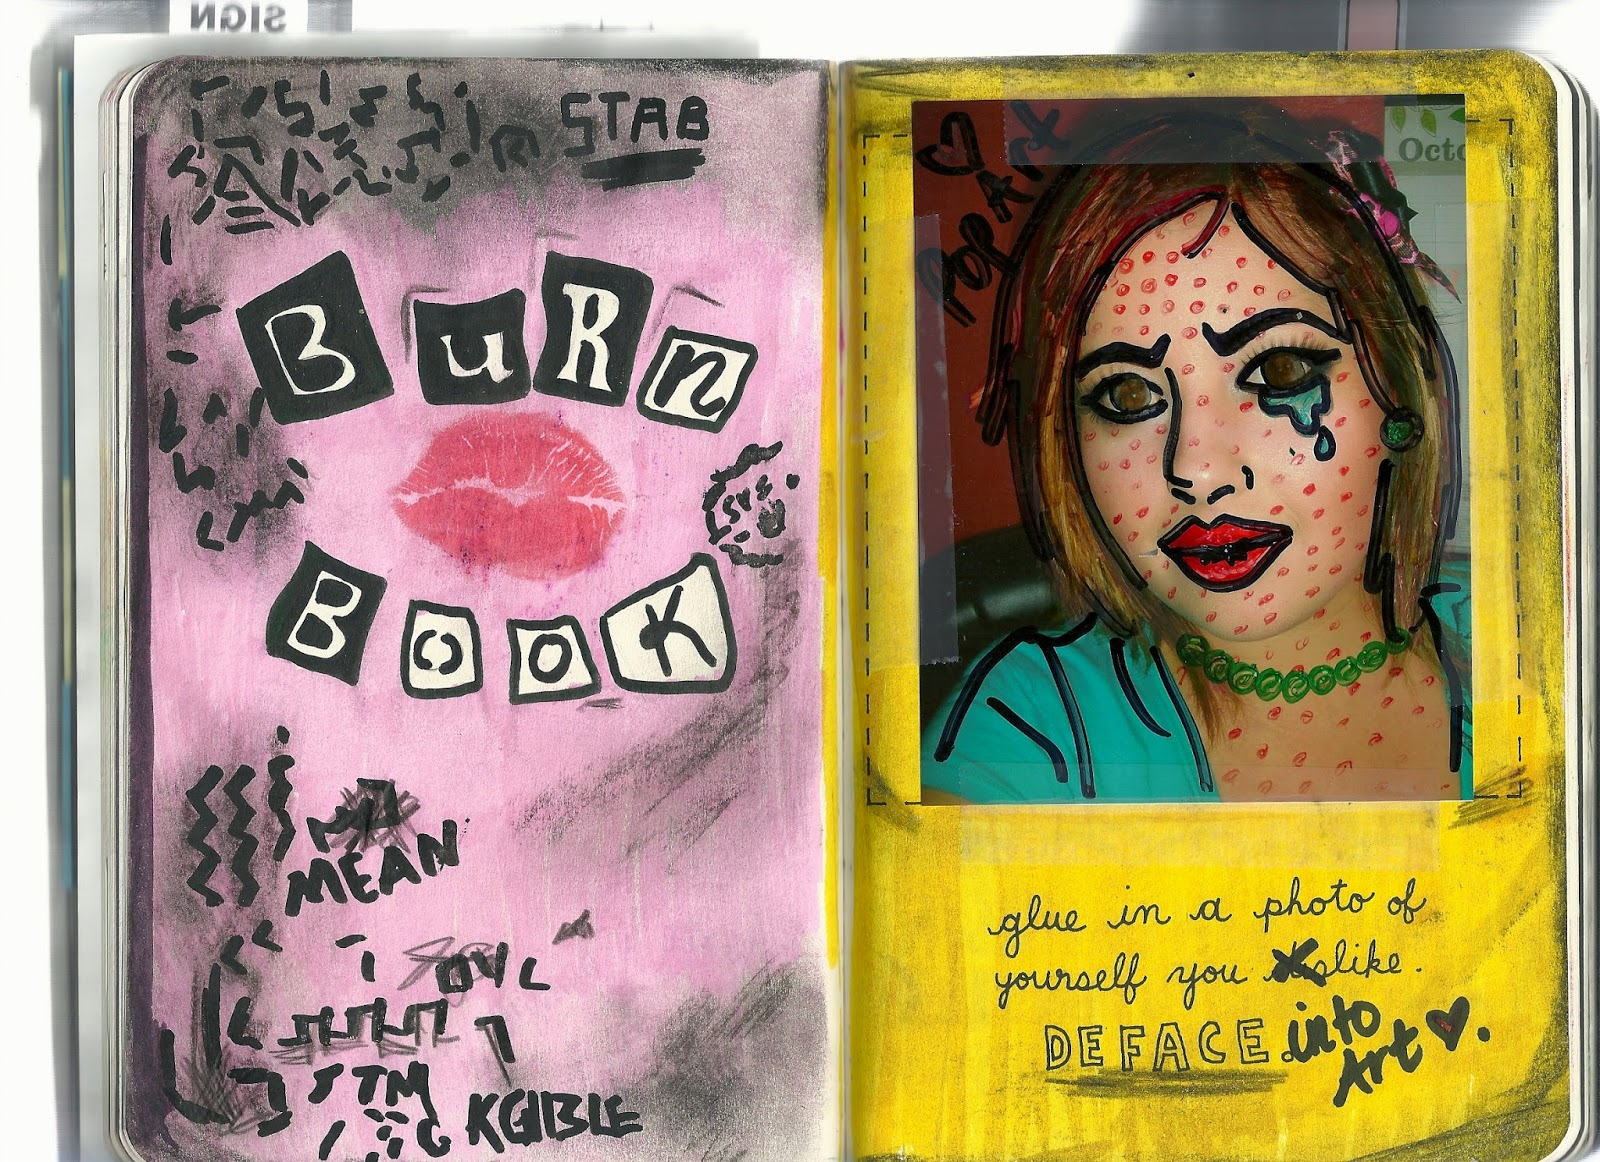 Krafty kids diy wtj pages 136 137 deface wreck this journal day 15 solutioingenieria Images